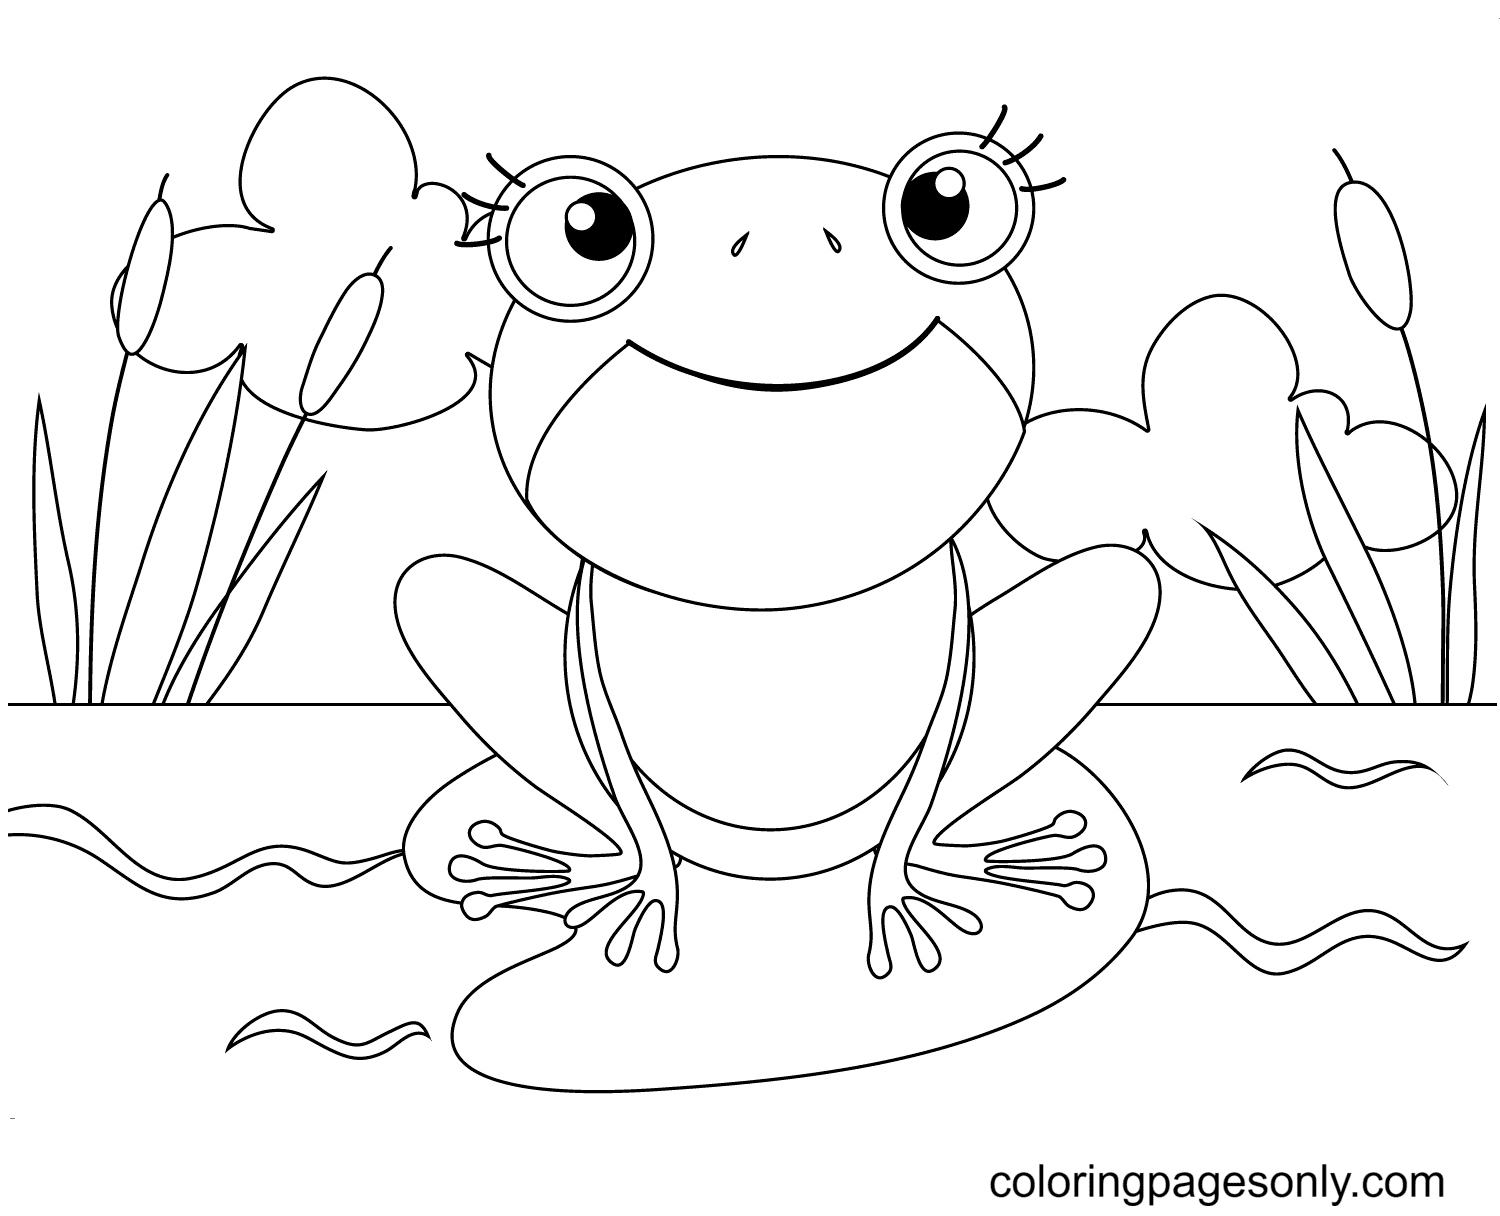 Frog On a Lily Pad Coloring Page